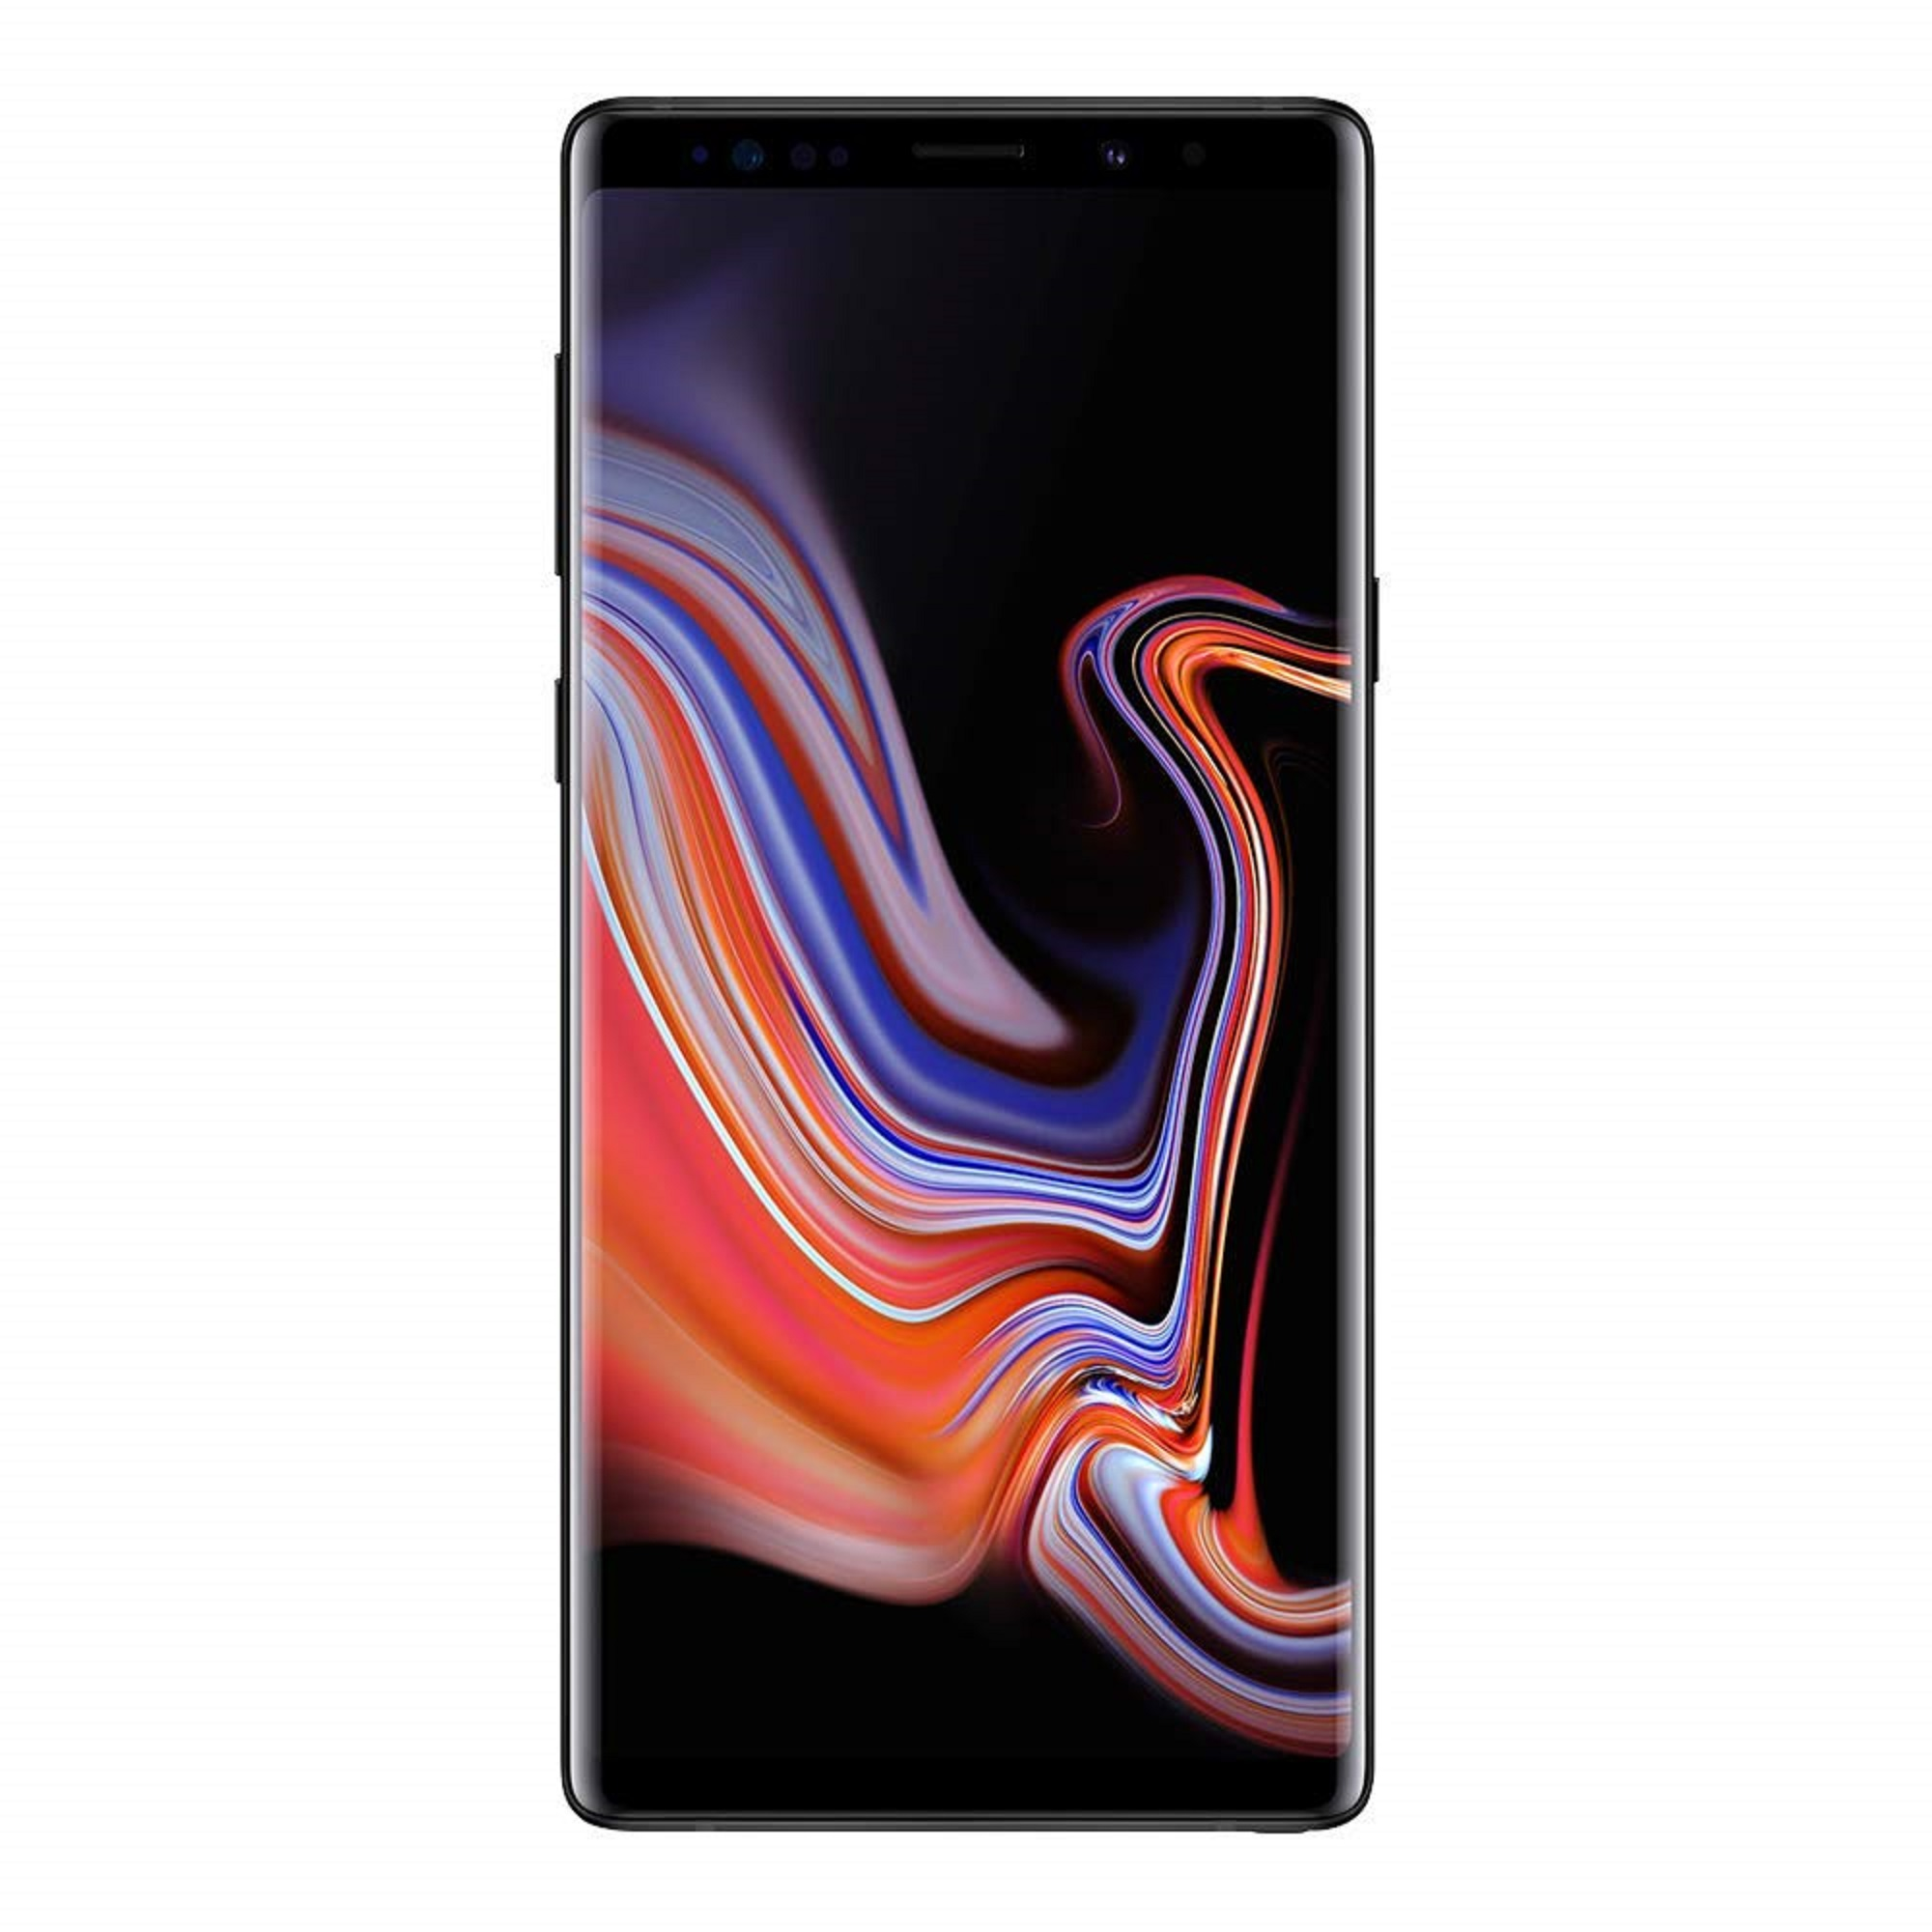 Samsung-Galaxy-Note9-N960U-128GB-Factory-Unlocked-Smartphone-Used-Acceptable thumbnail 12